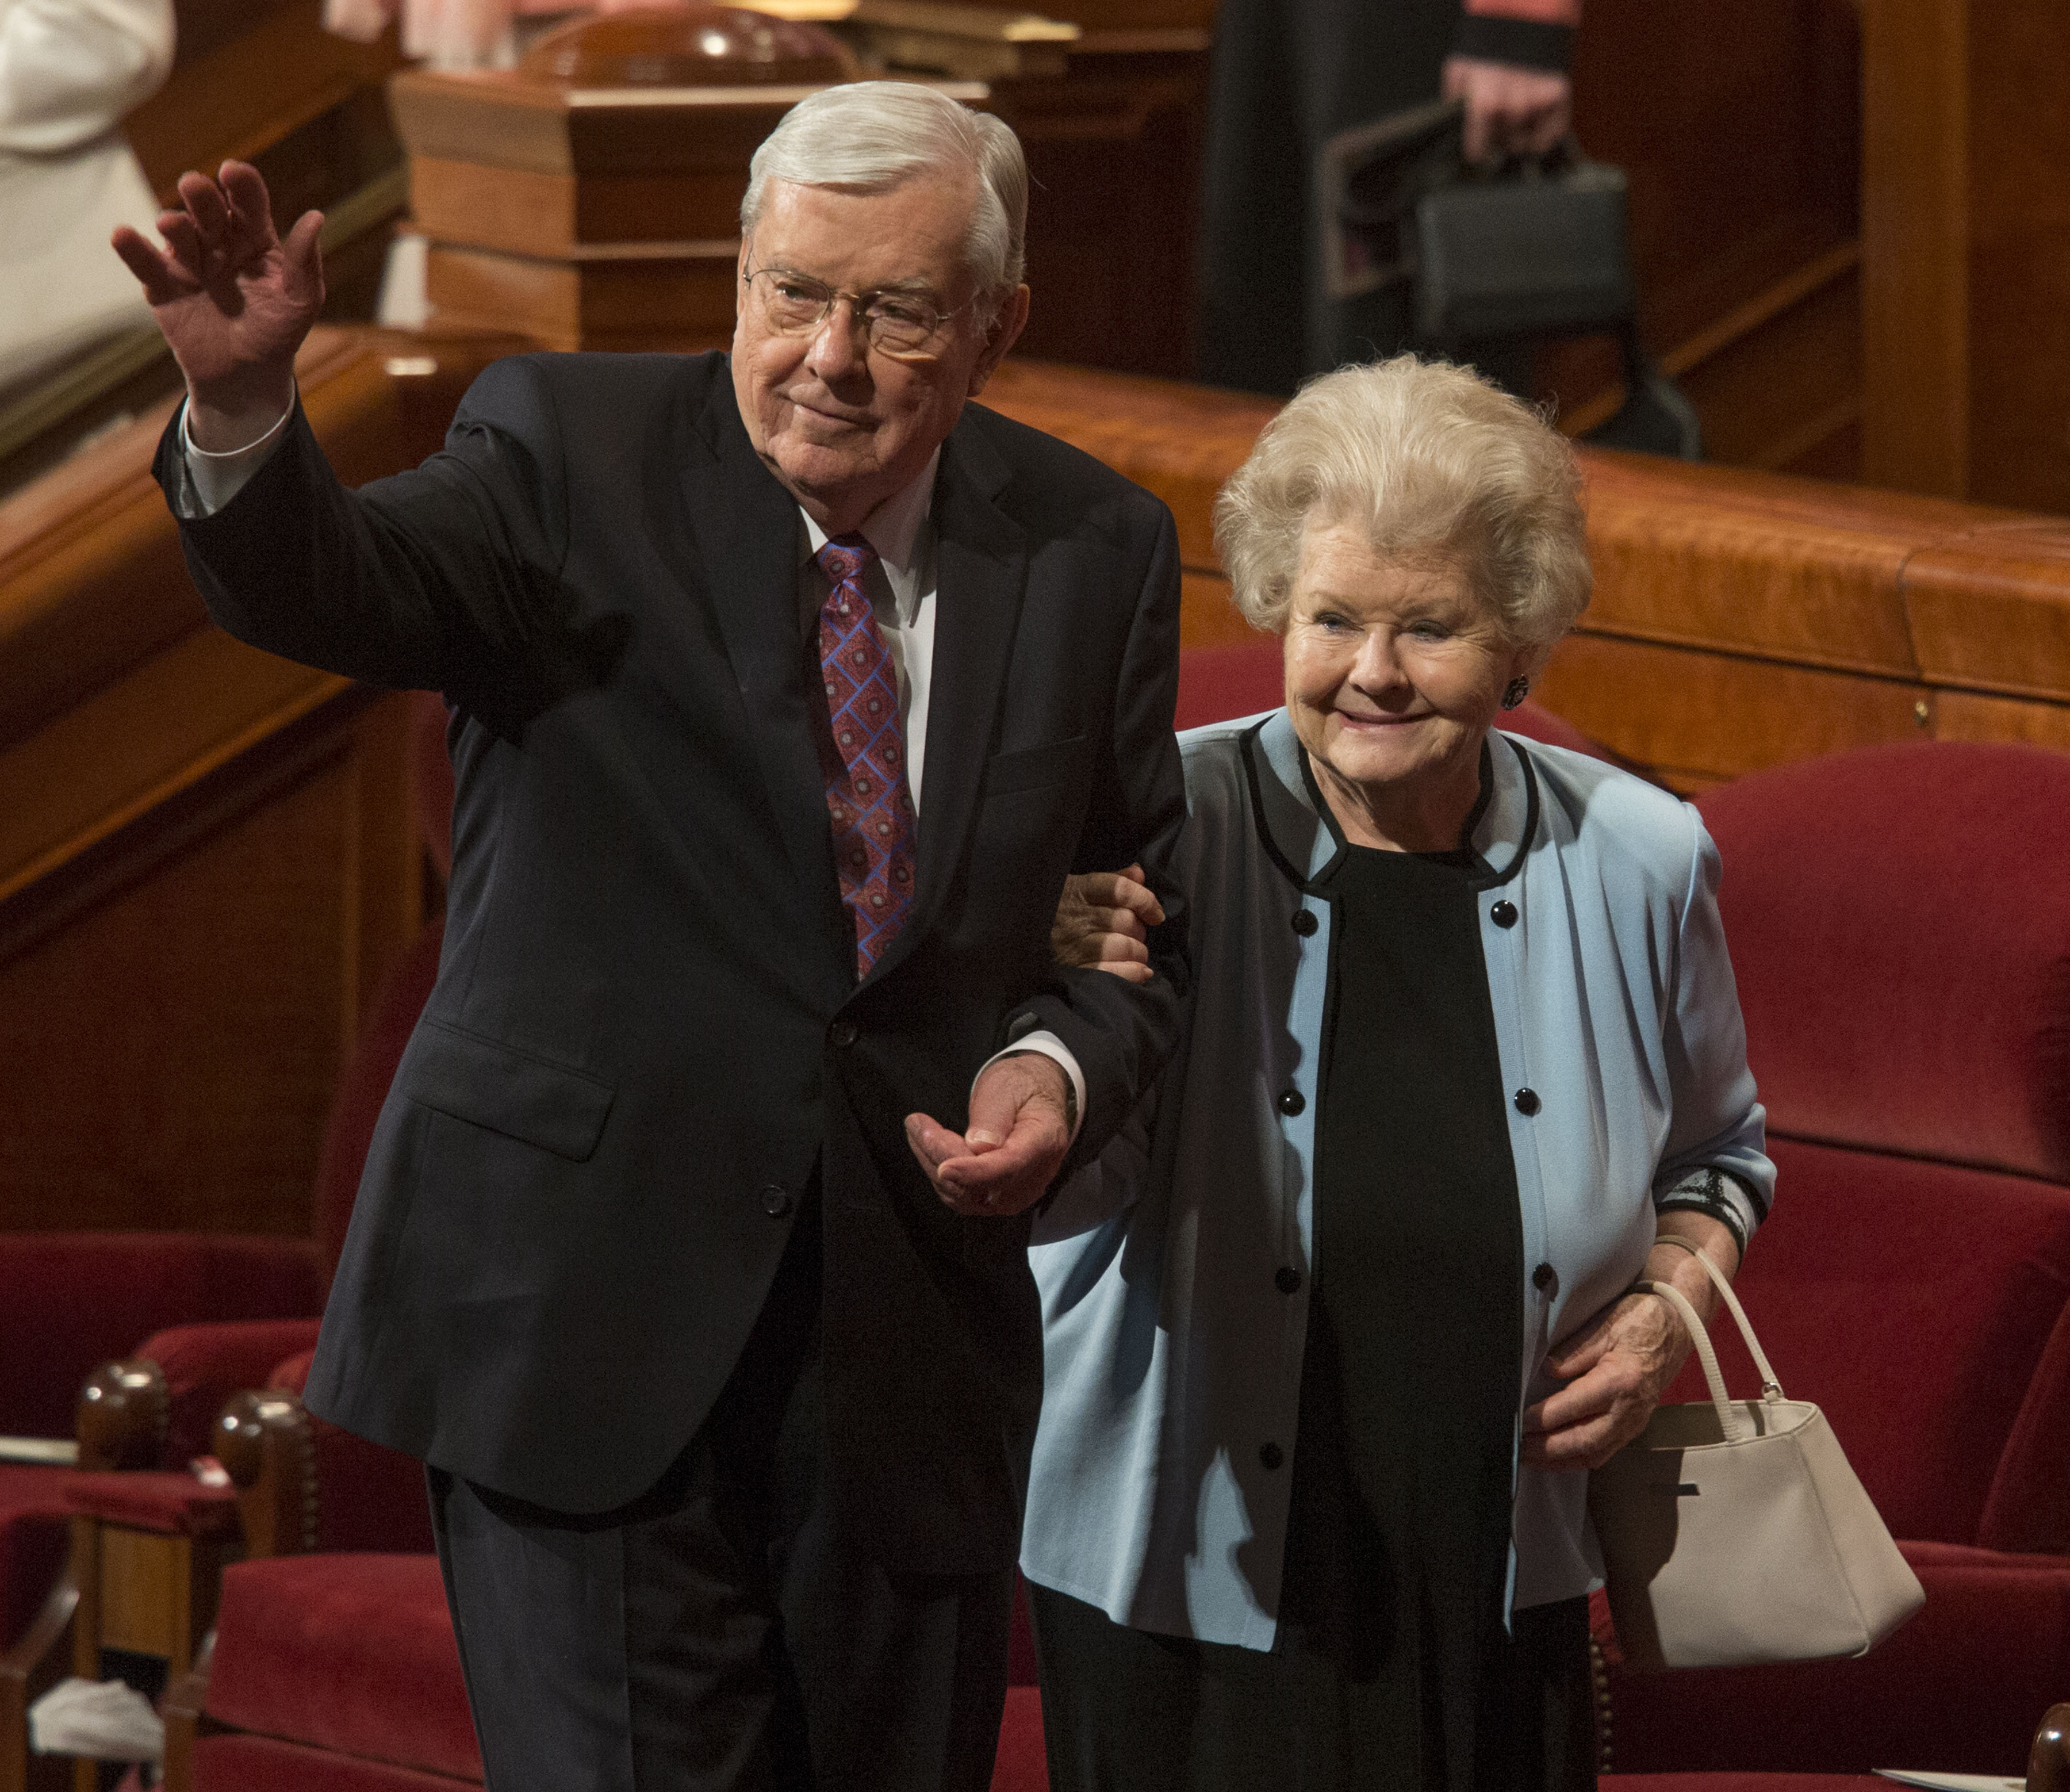 Elder M. Russell Ballard of the Quorum of the Twelve Apostles and his wife, Sister Barbara B. Ballard, exit the stand following the Sunday morning session of the 184th Annual General Conference Sunday, April 6, 2014, at the Conference Center in Salt Lake City.